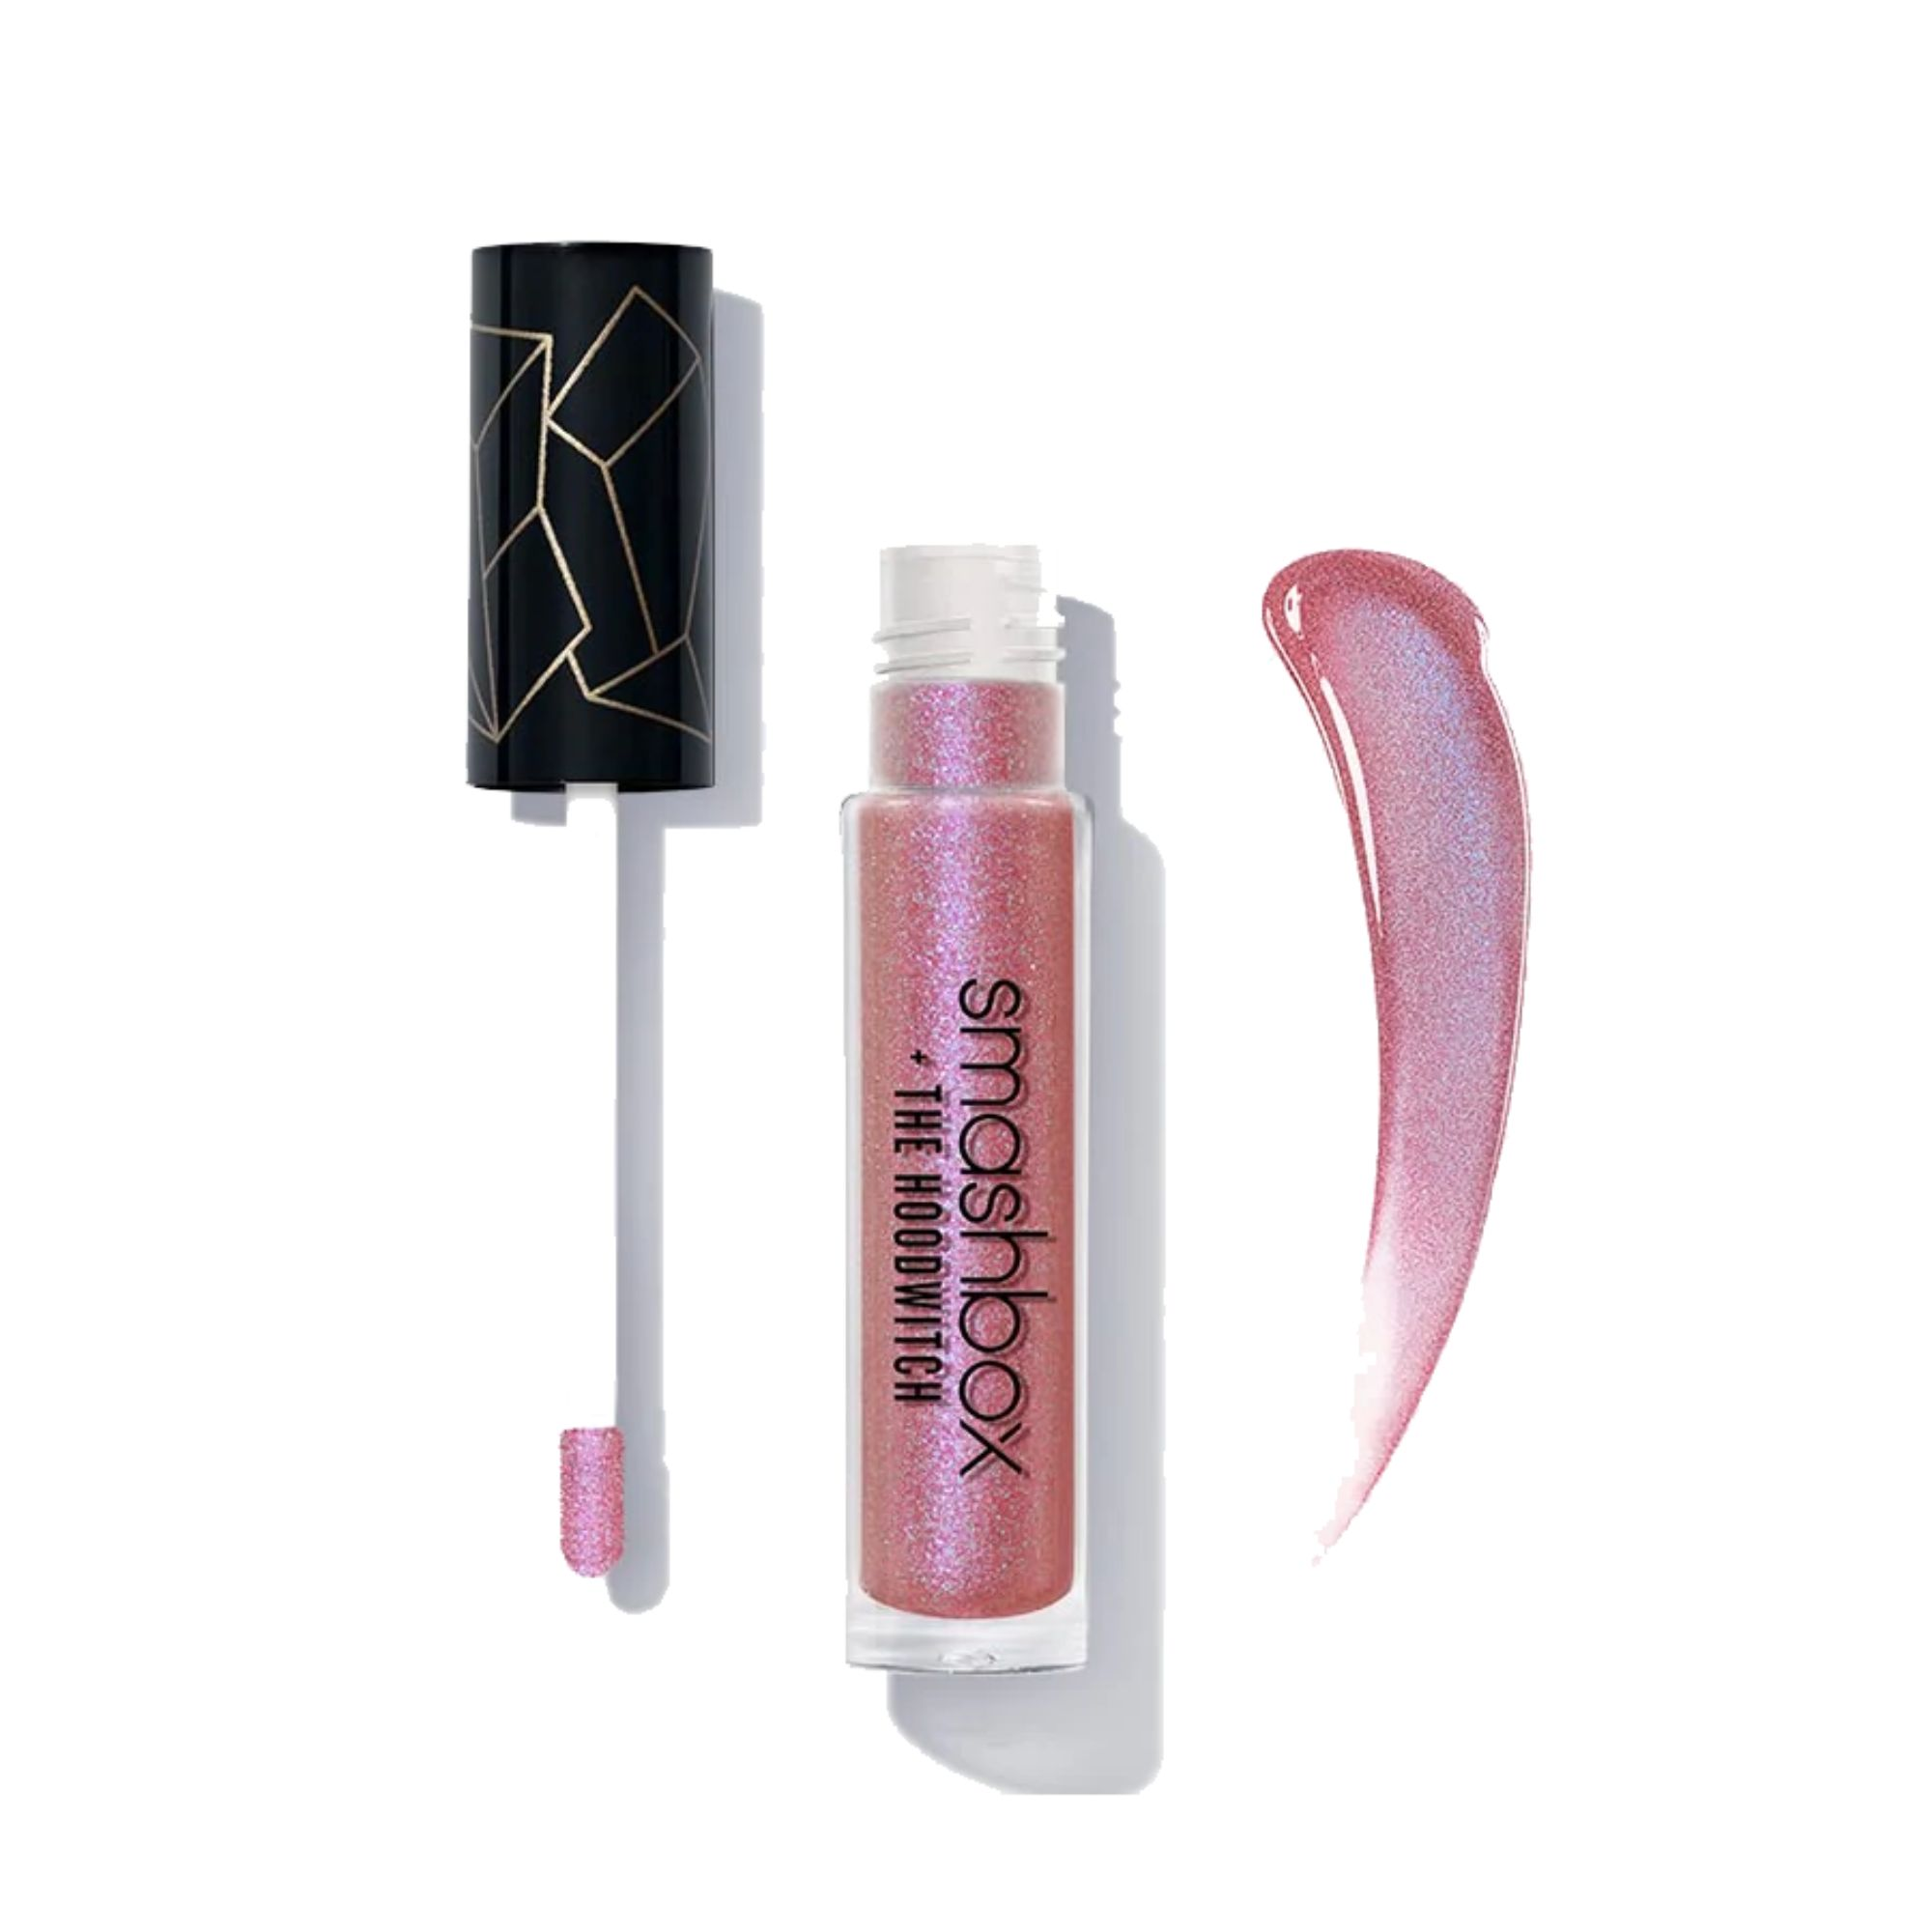 Crystalized Gloss Angeles Lip Gloss